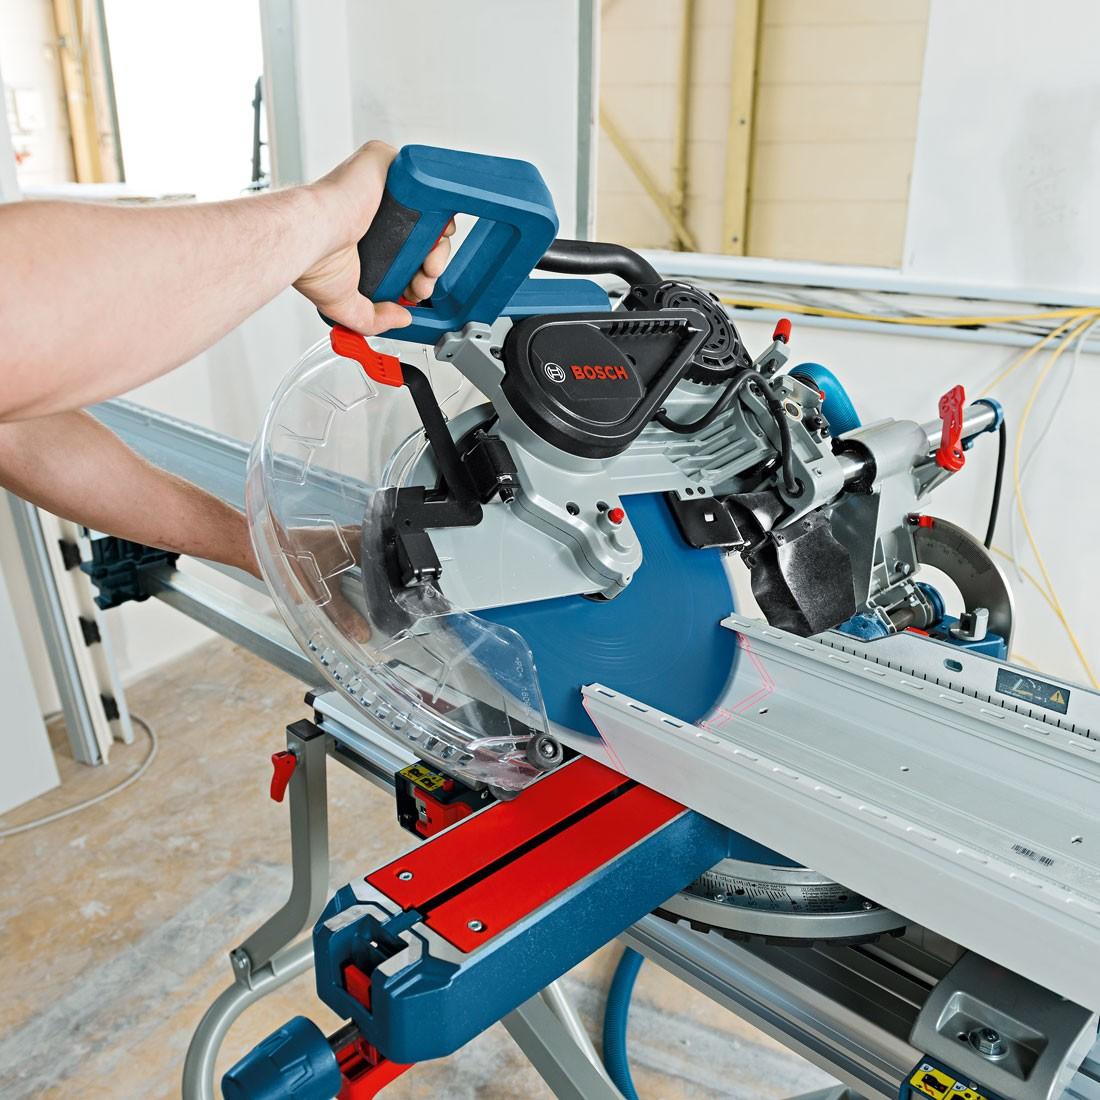 bosch gcm 12 sde 12 double bevel sliding mitre saw powertool world. Black Bedroom Furniture Sets. Home Design Ideas